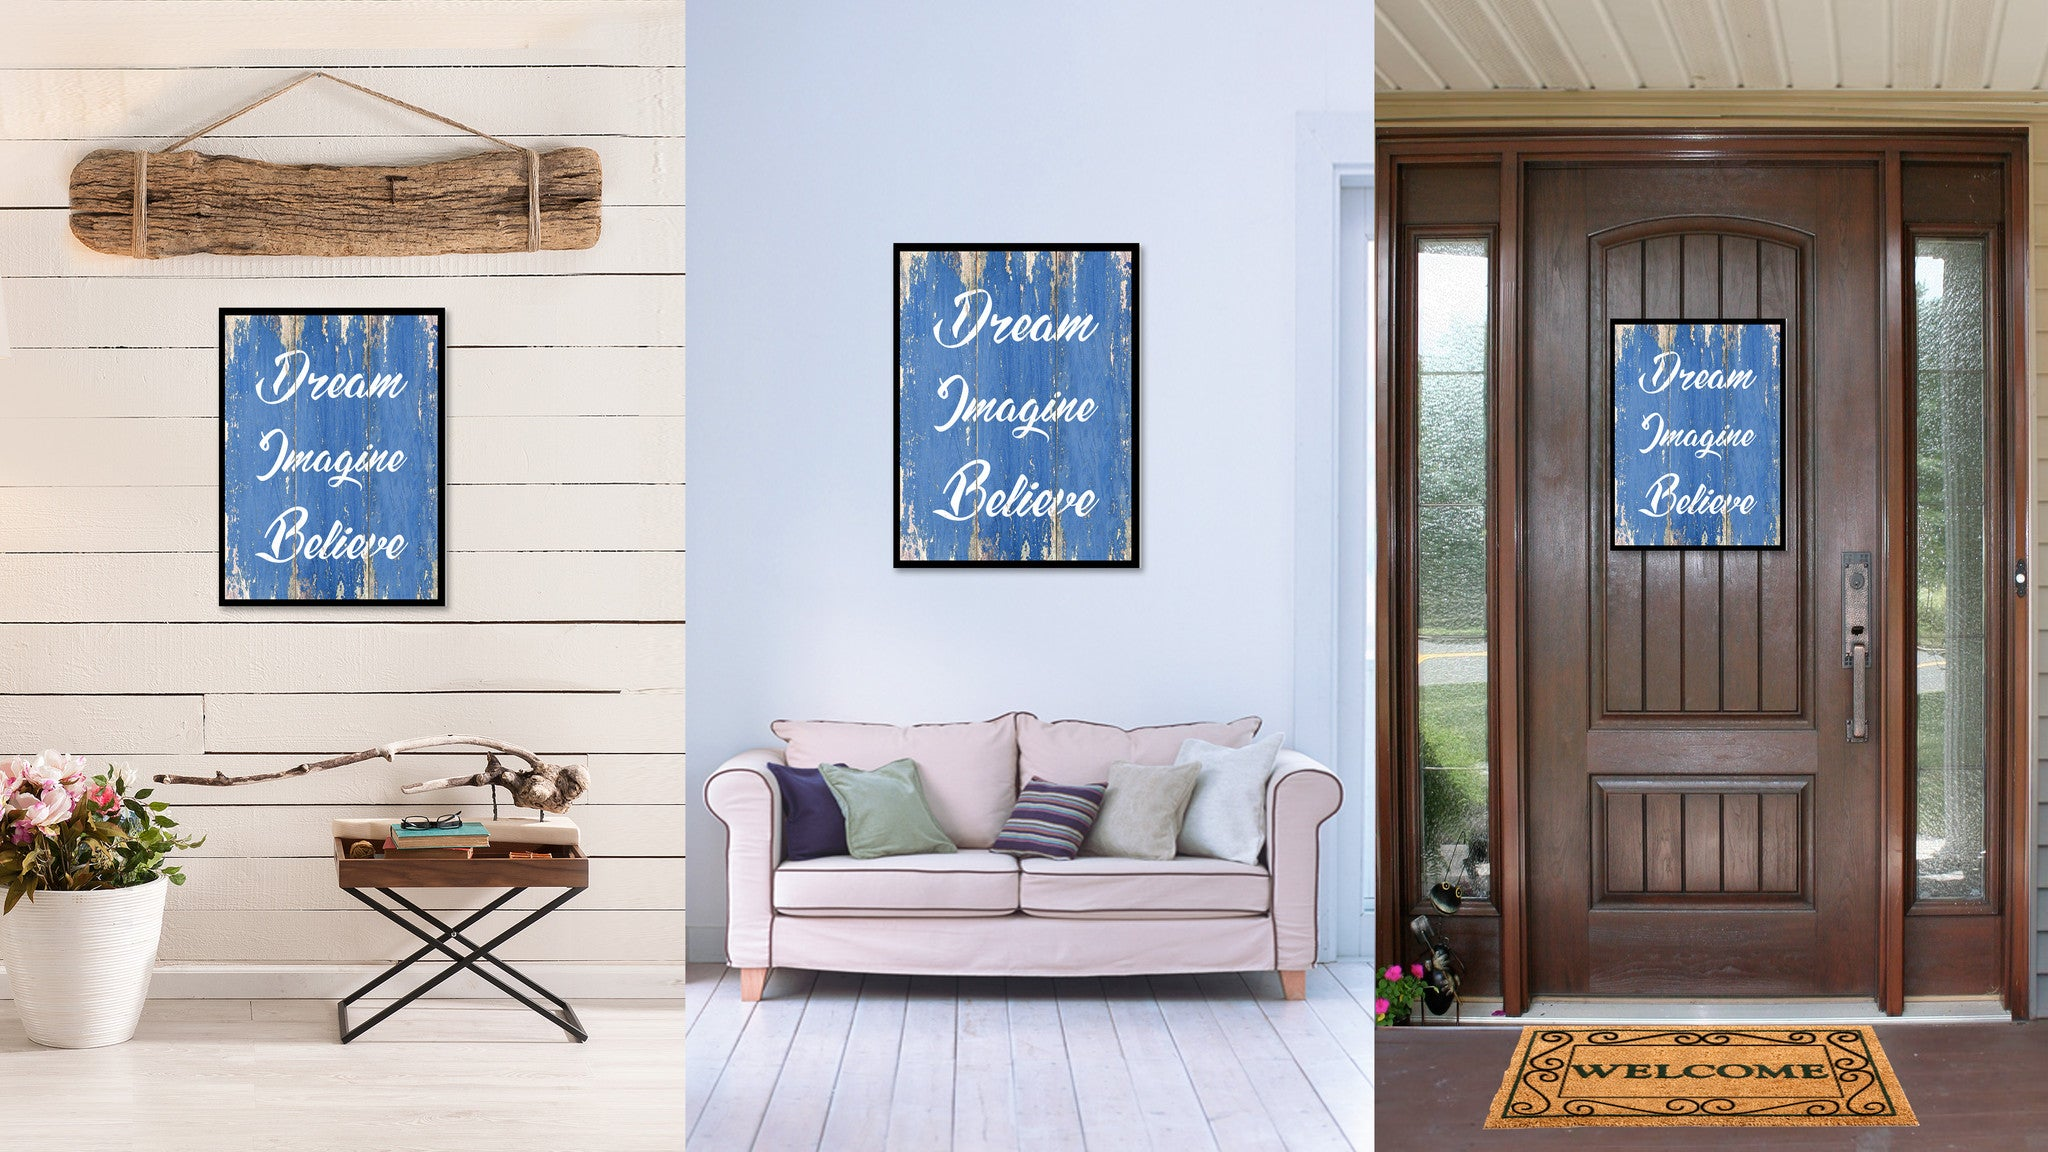 Dream Imagine Believe Quote Saying Gift Ideas Home Decor Wall Art